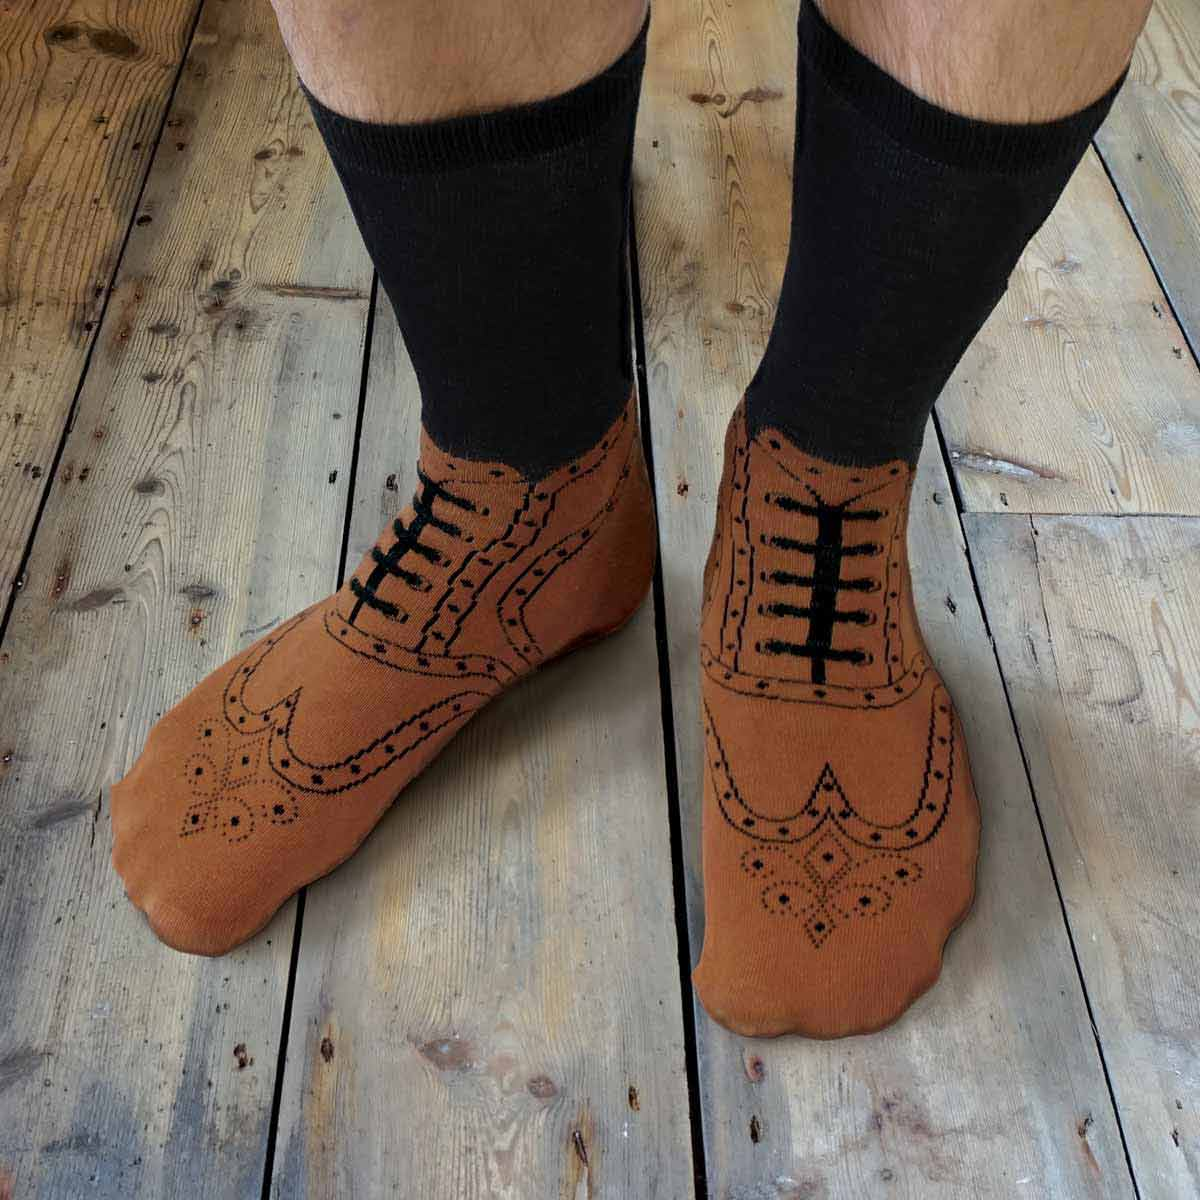 Quirky Brogues Socks by Ginger Fox | The Design Gift Shop